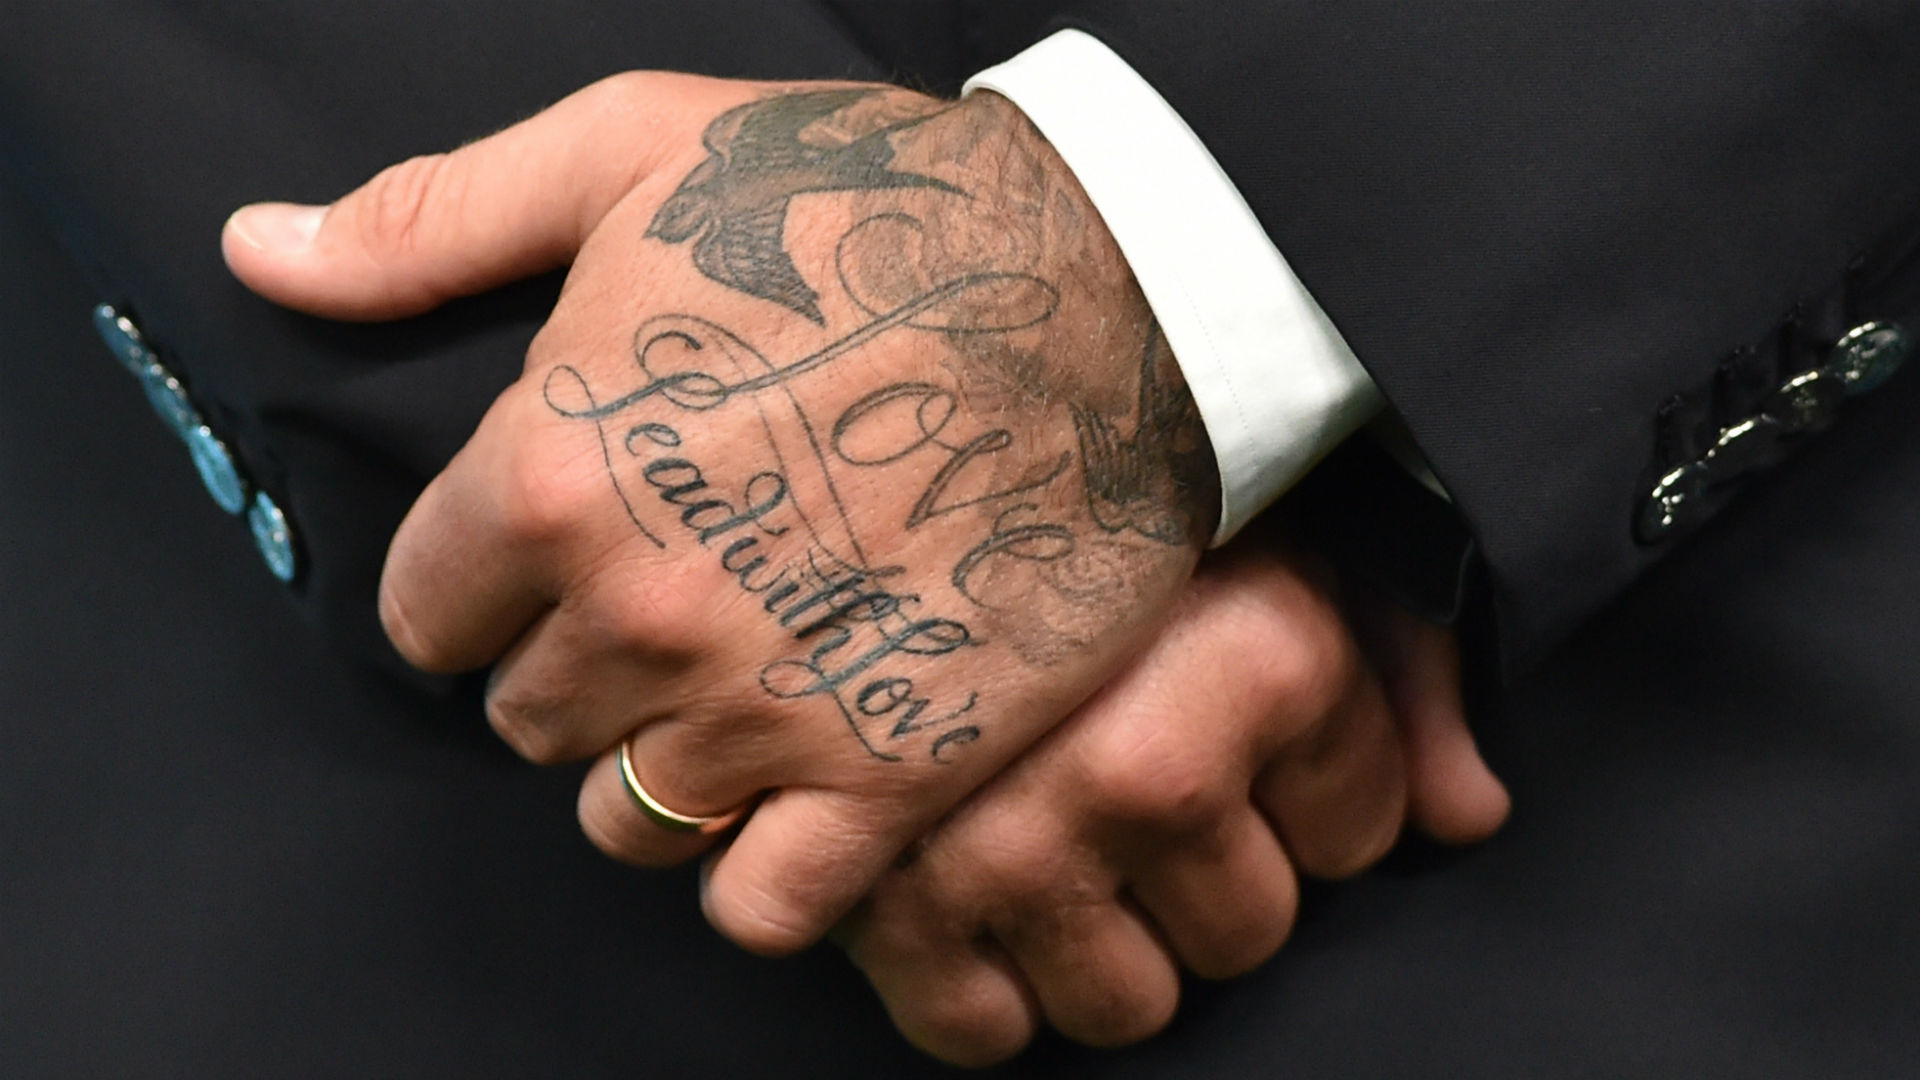 David Beckham's tattoos: Where are they and what do they ...